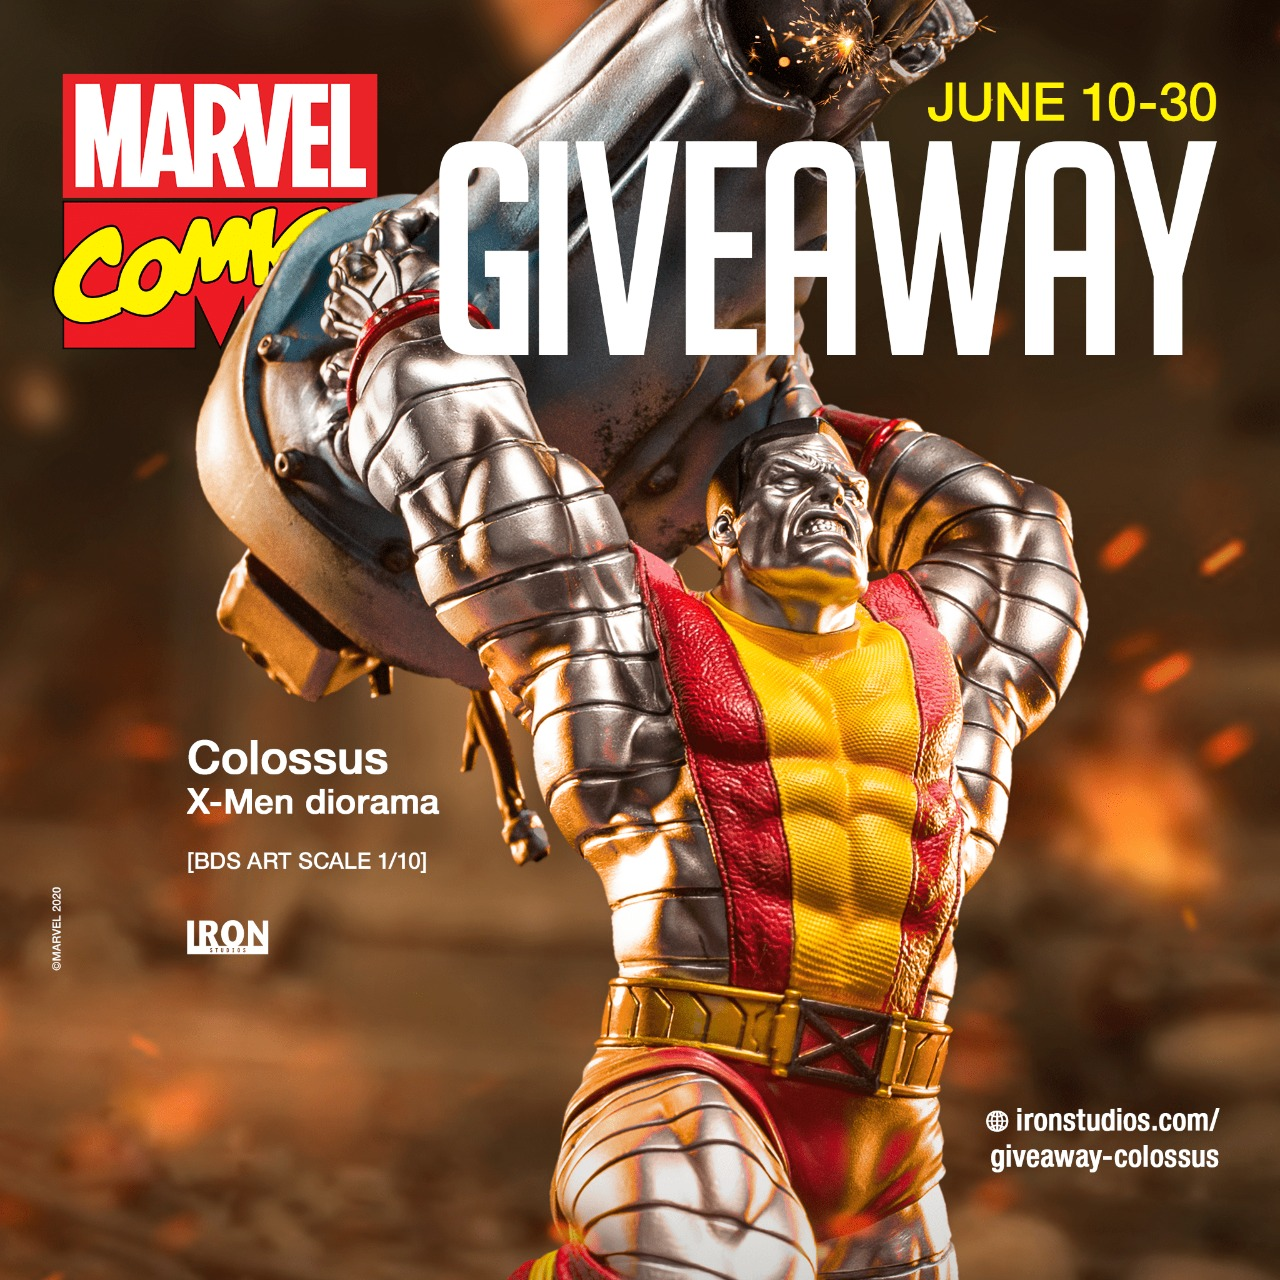 Giveaway Colossus